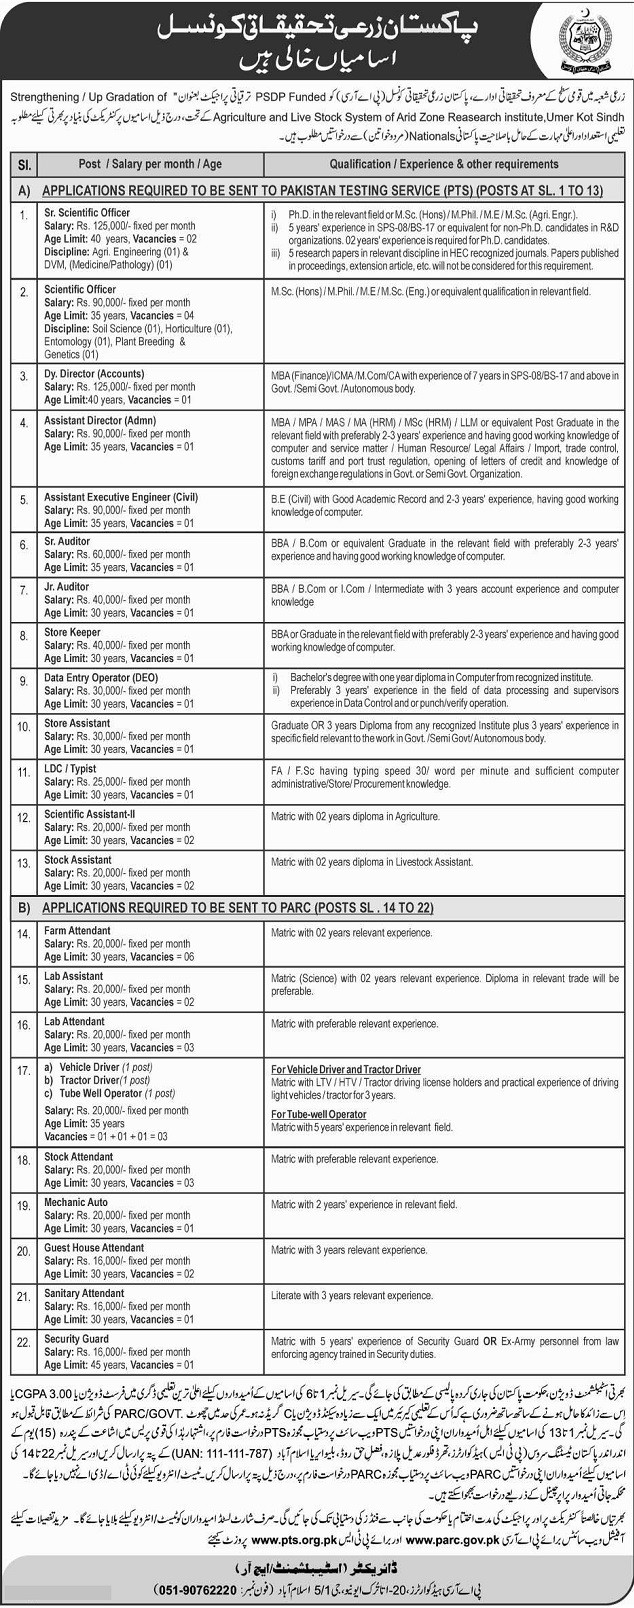 Pakistan Agriculture and Research Council PTS Jobs 2019